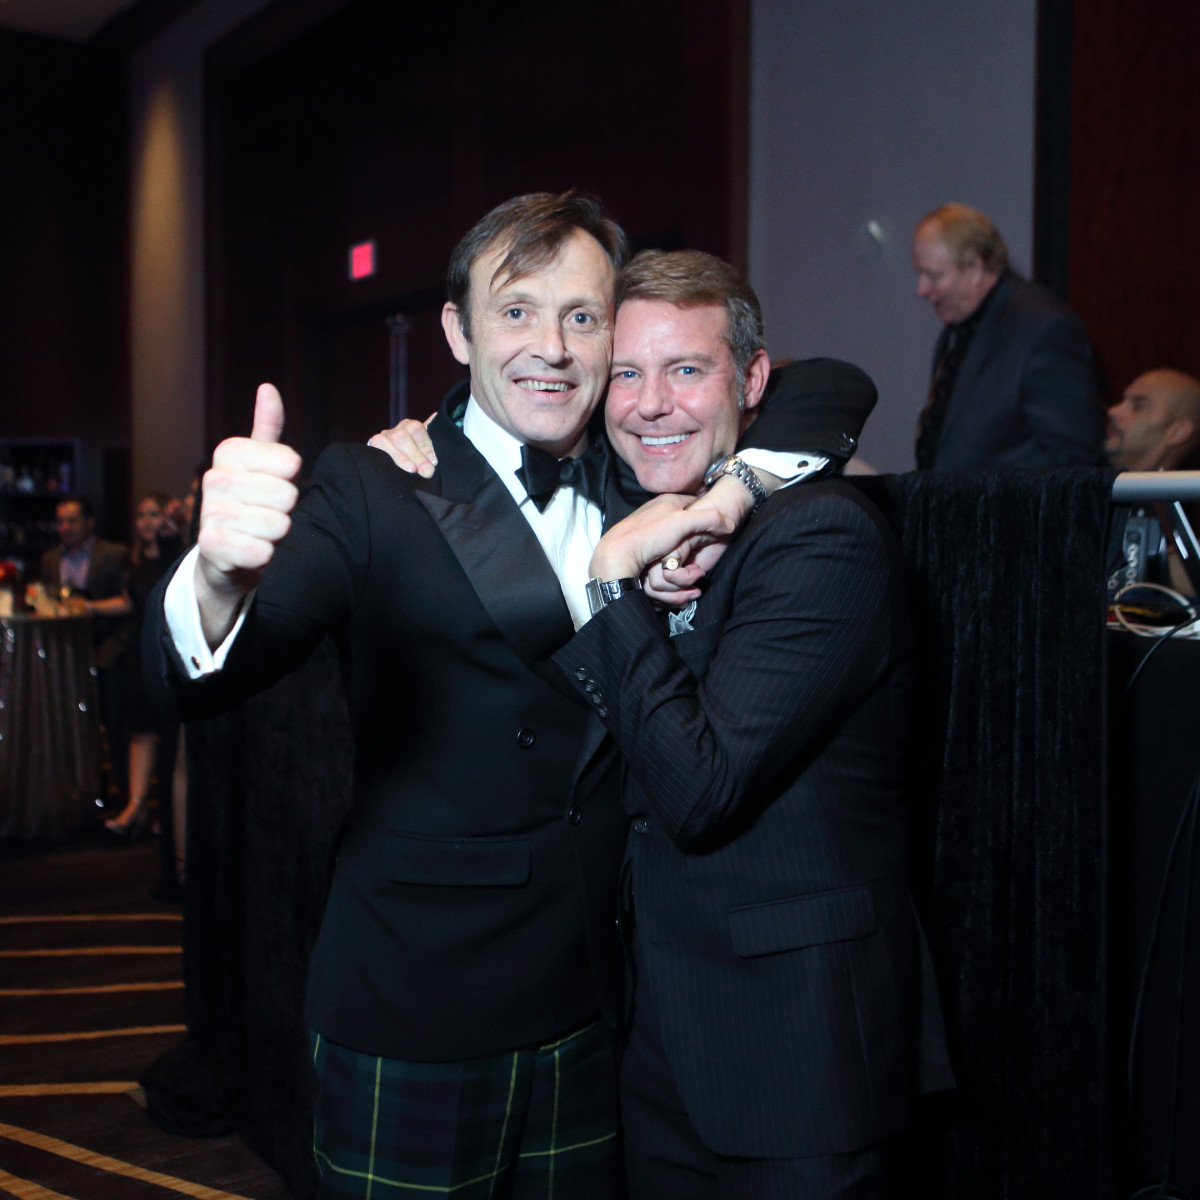 News, Shelby, Women's Home gala, Nov. 2015, Angus Adam, Paul David Van Atta